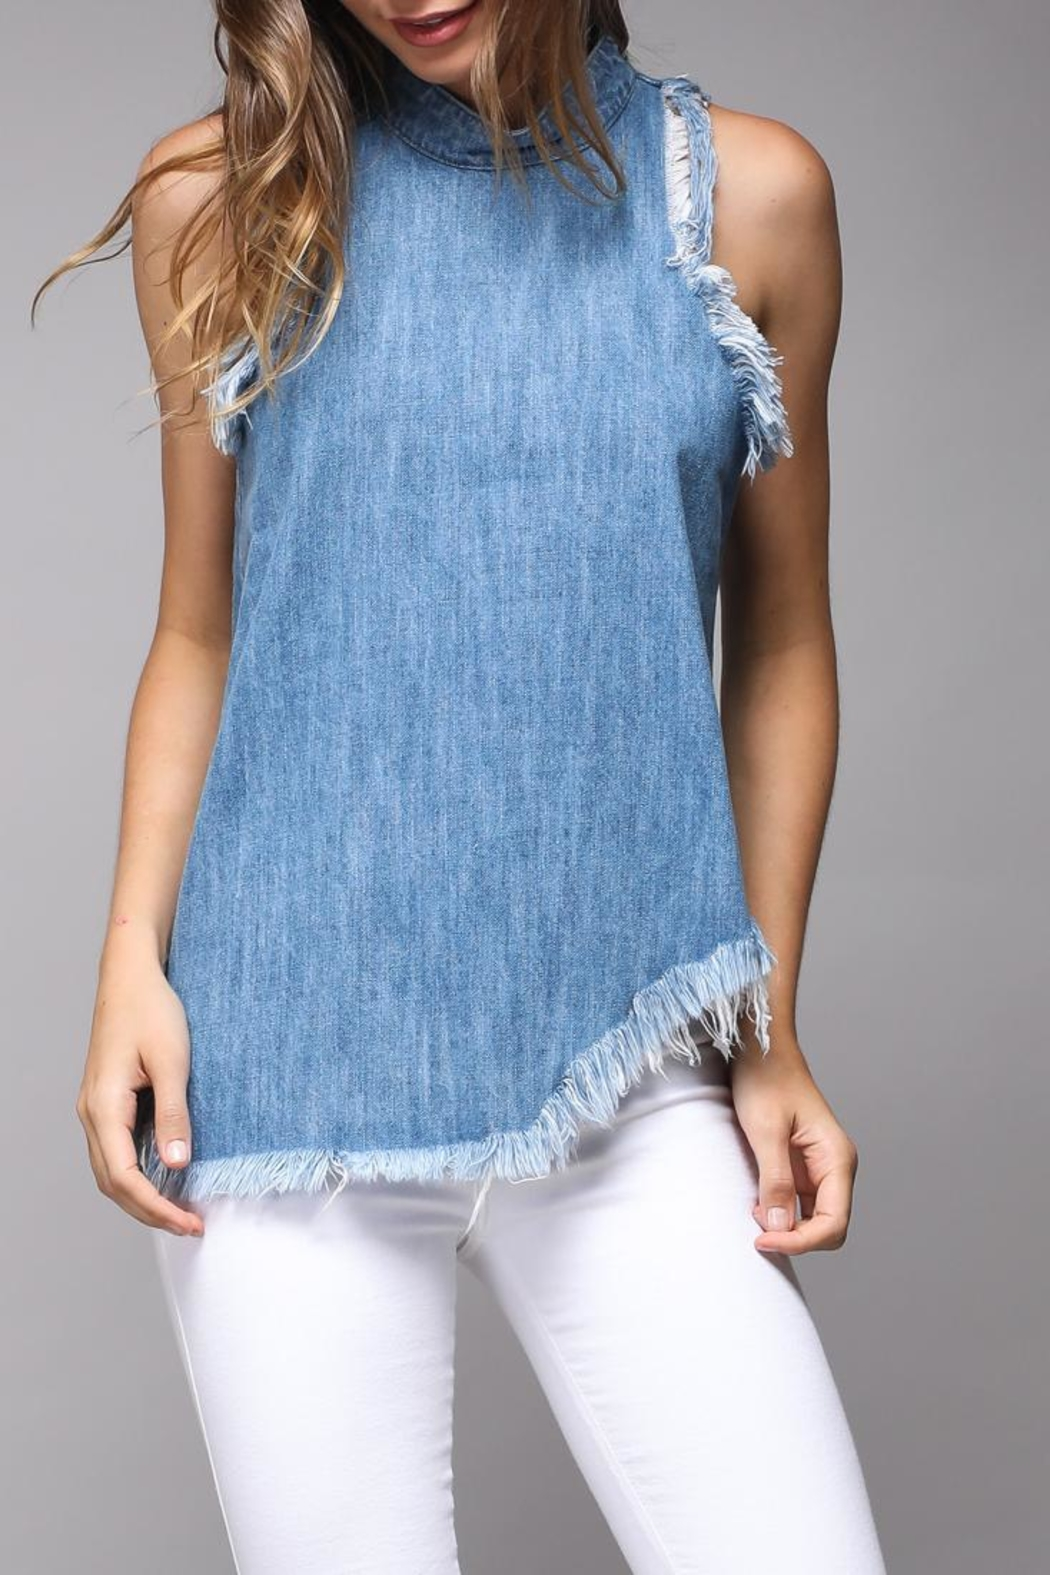 Do & Be Distressed Denim Top - Back Cropped Image